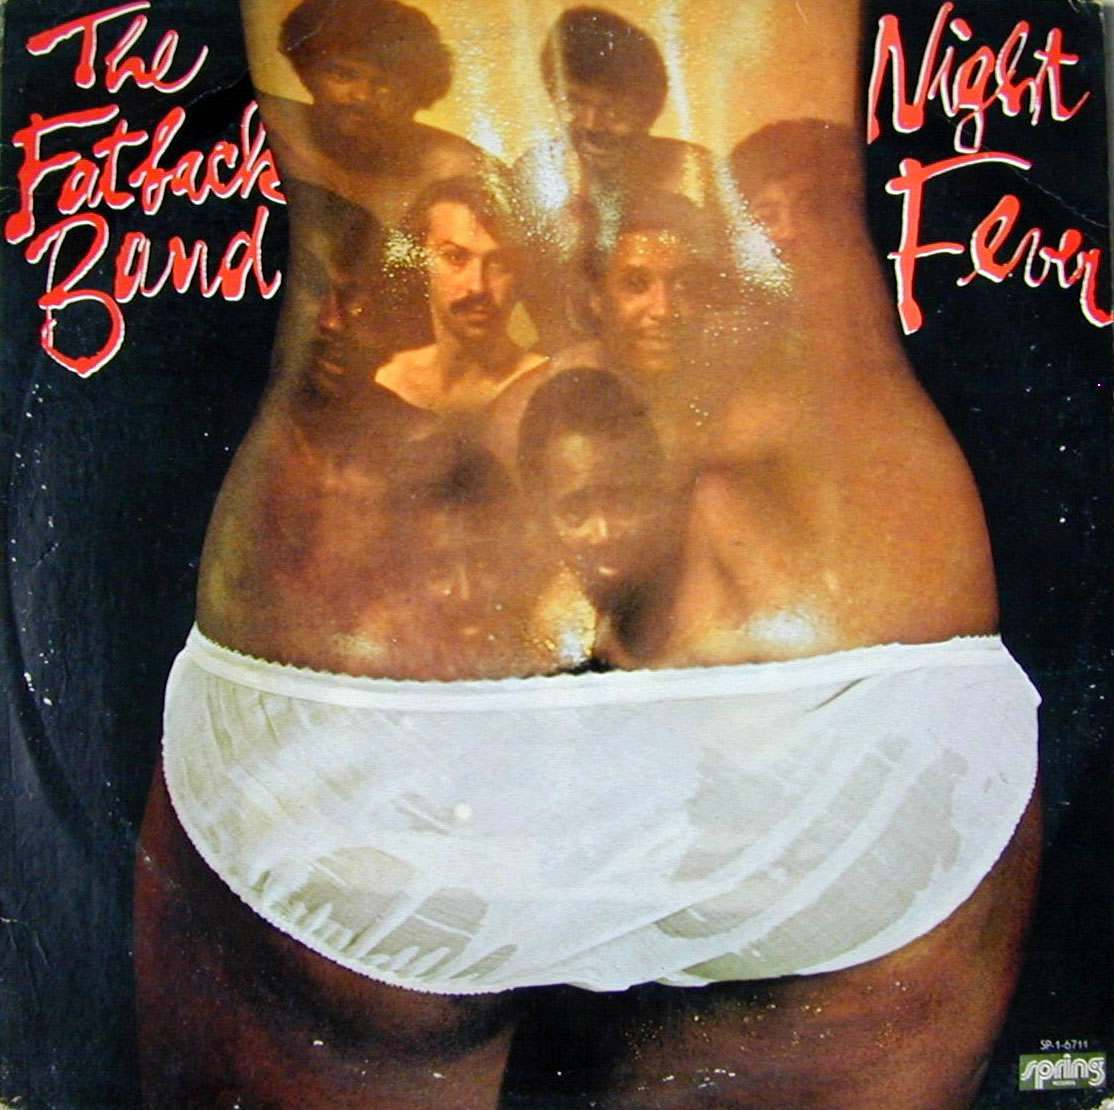 Butts On Vinyl Record Covers A 1970s Contagion Flashbak